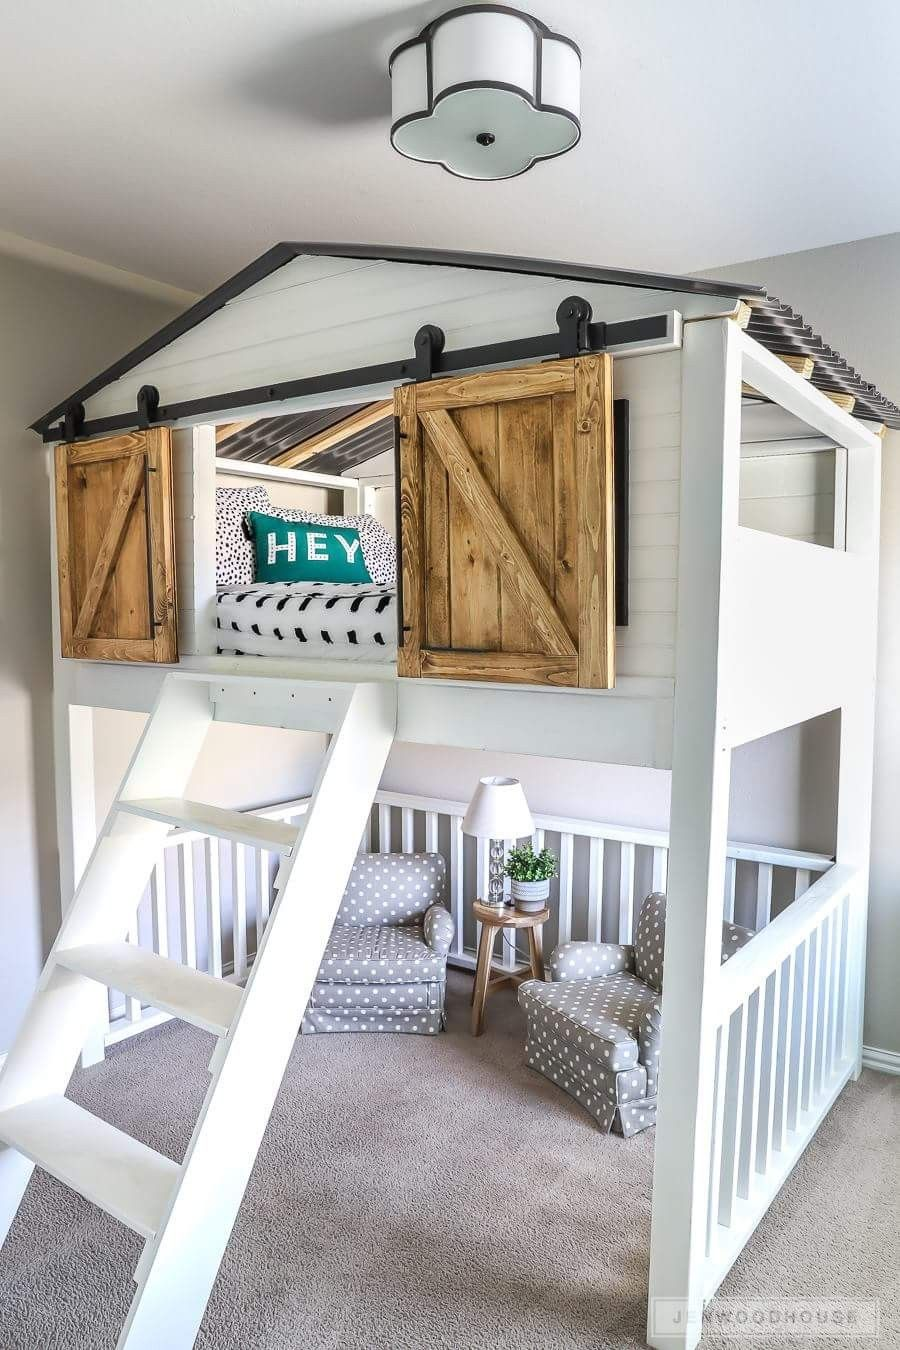 Love The Little Loft Area With The Barn Doors Diy Sliding Barn Door Bedroom Design Cool Rooms